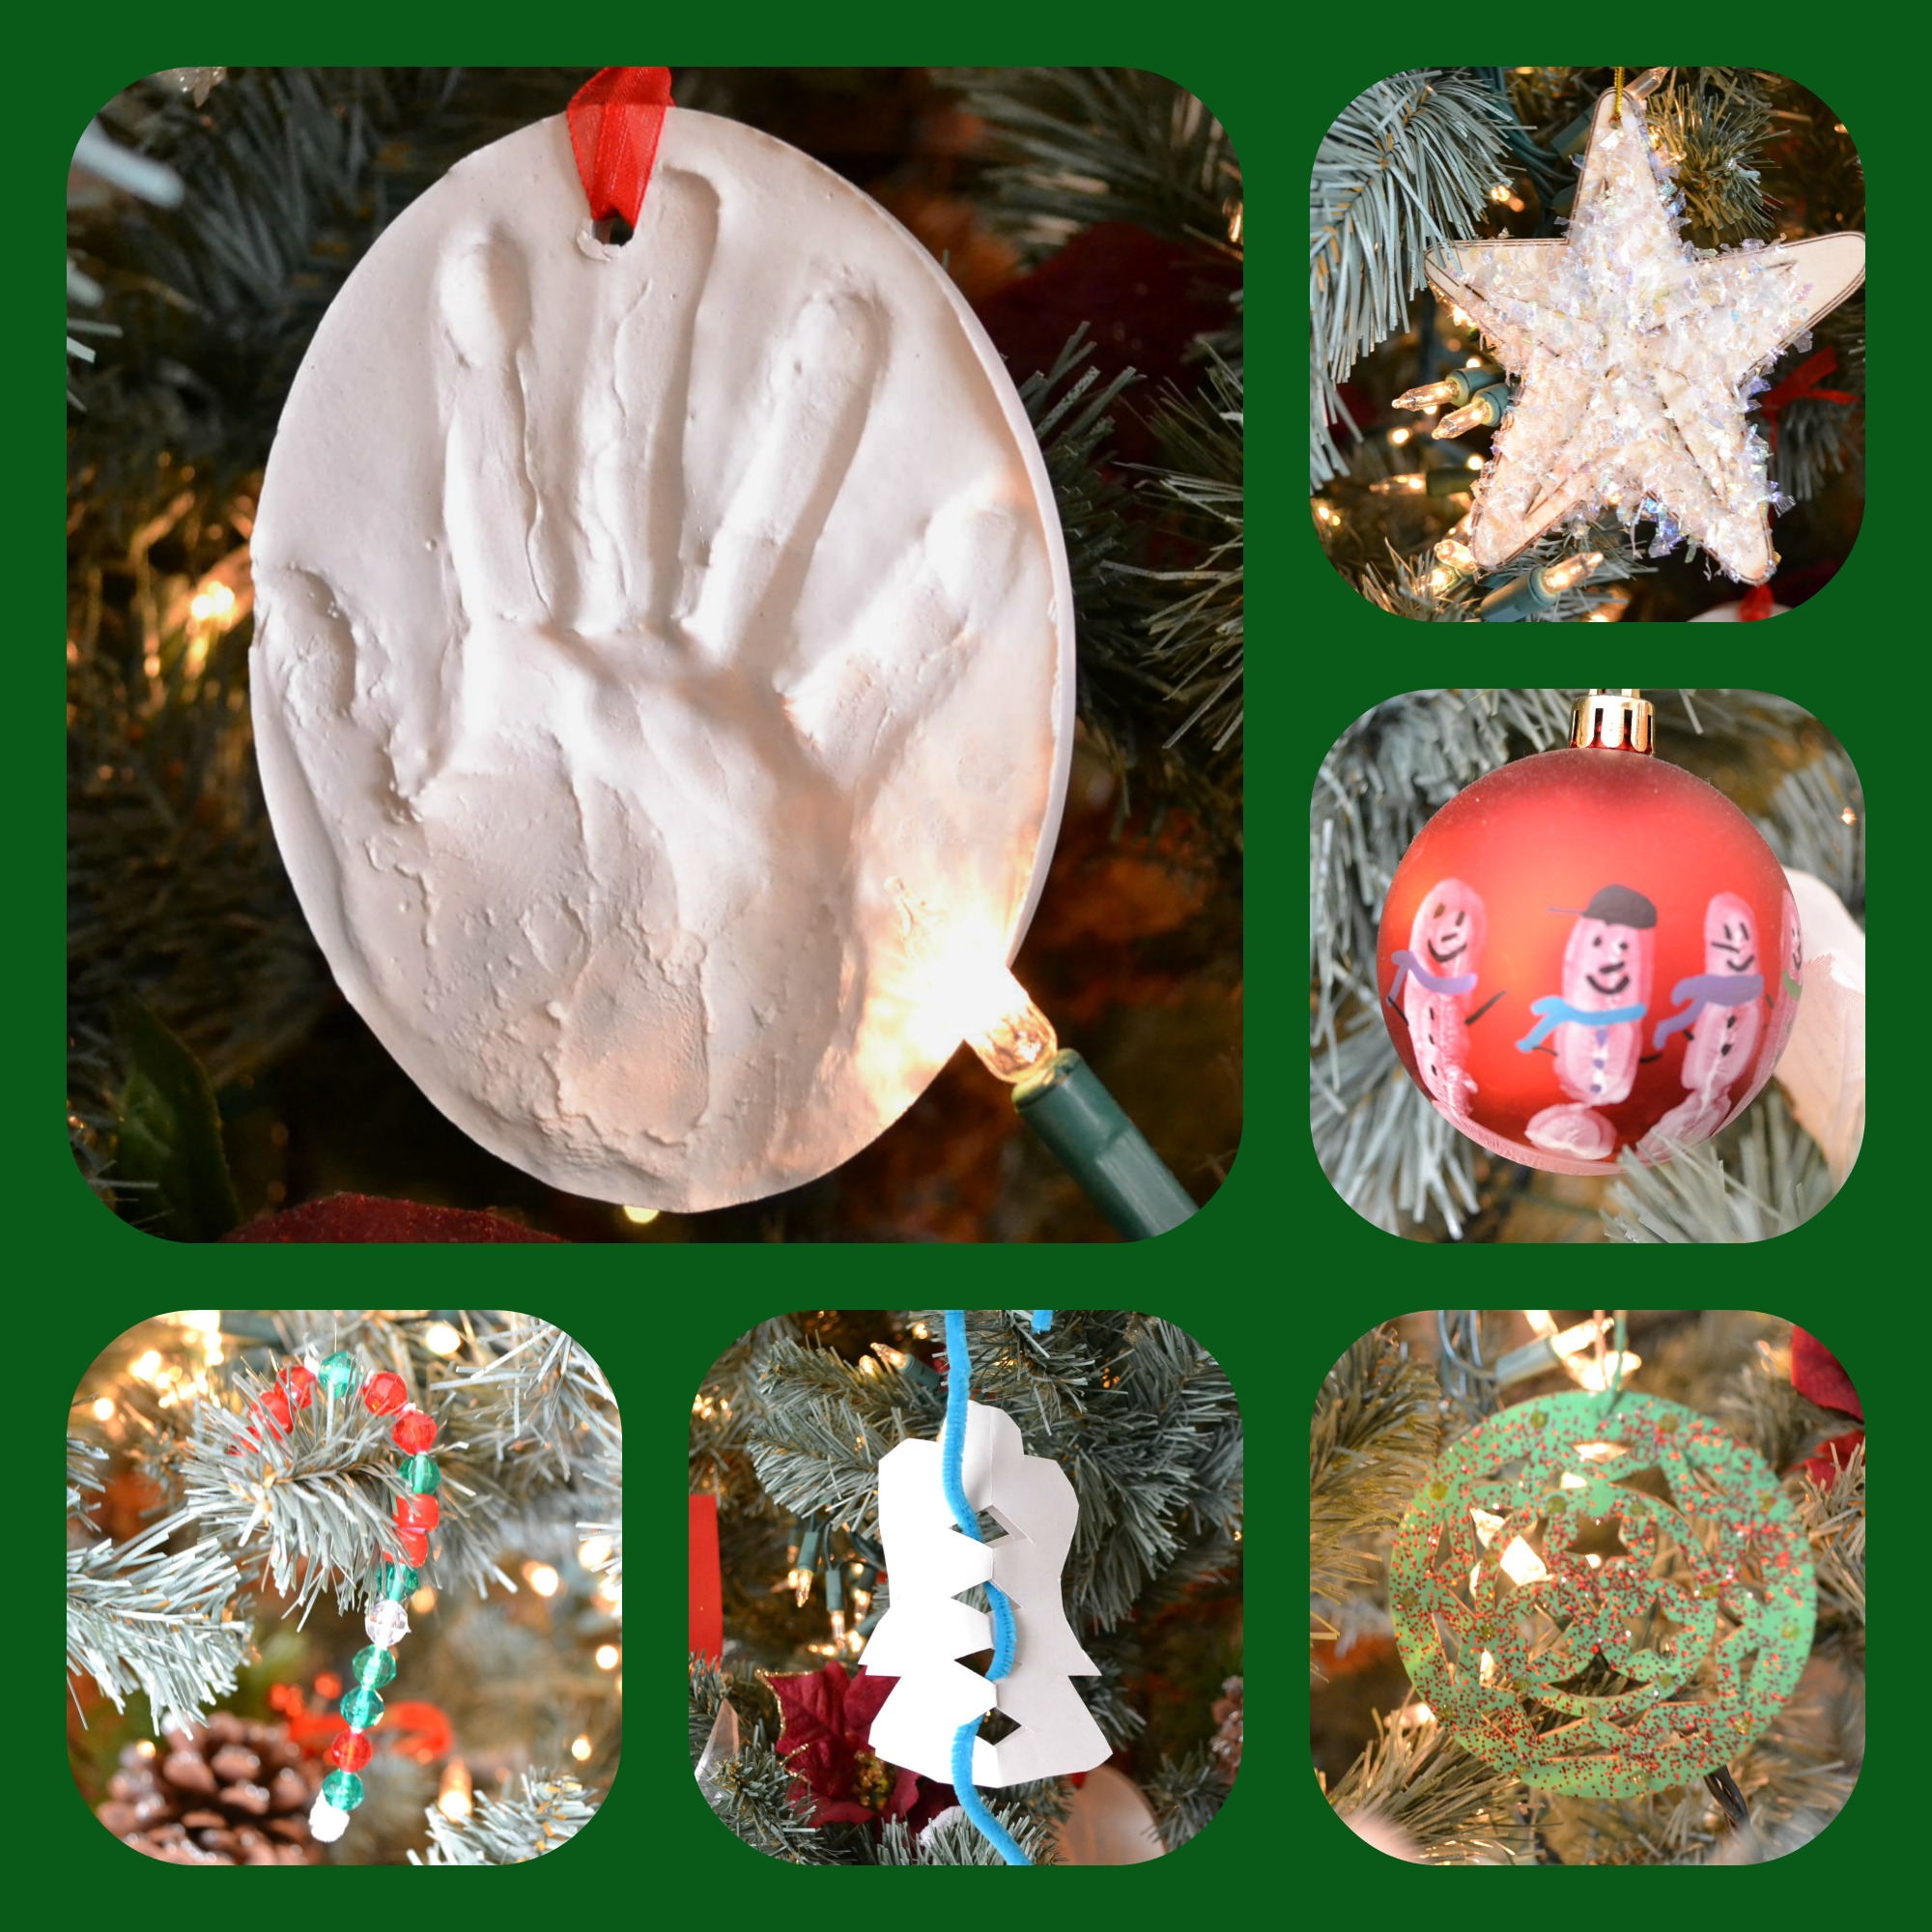 Beautiful Christmas ornaments that your kids can make that you will actually want to hang on your Christmas tree! #Christmas #ornaments #Christmastree #christmasornaments #christmascrafts #kidcrafts #diy #christmasdiy #christmasdecorations